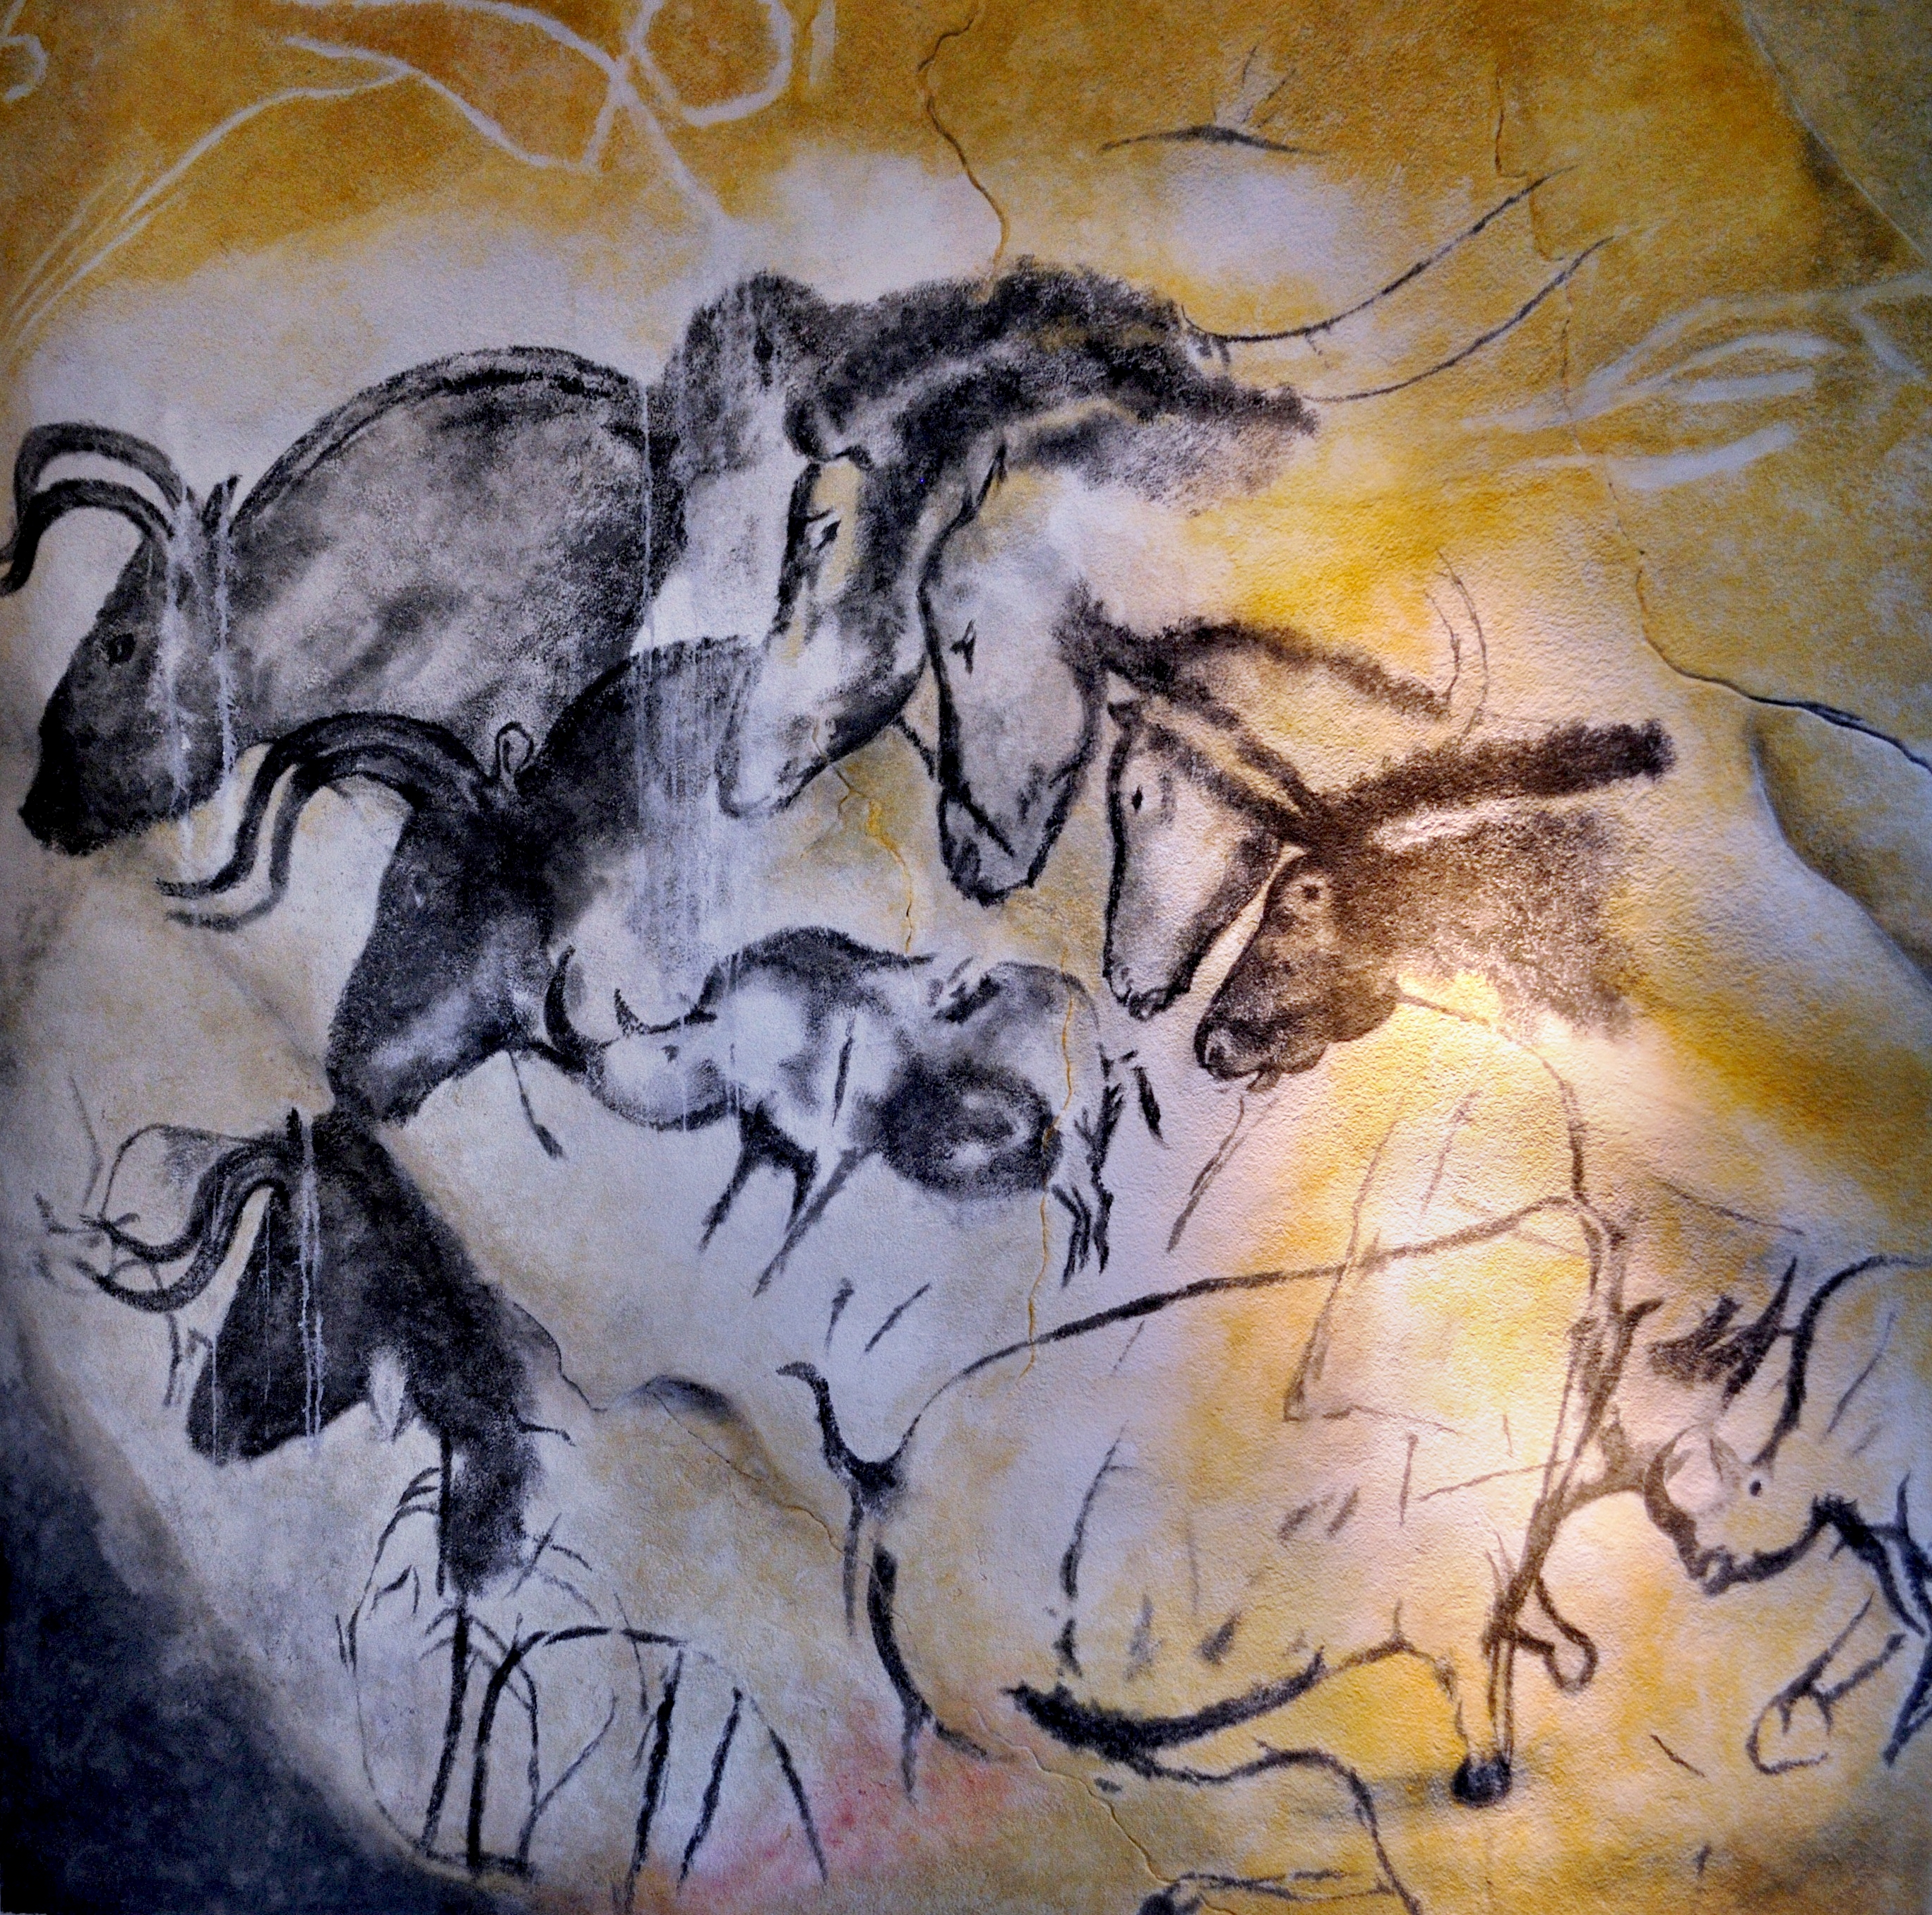 Esa Cave Painting From Char Bone Pigment